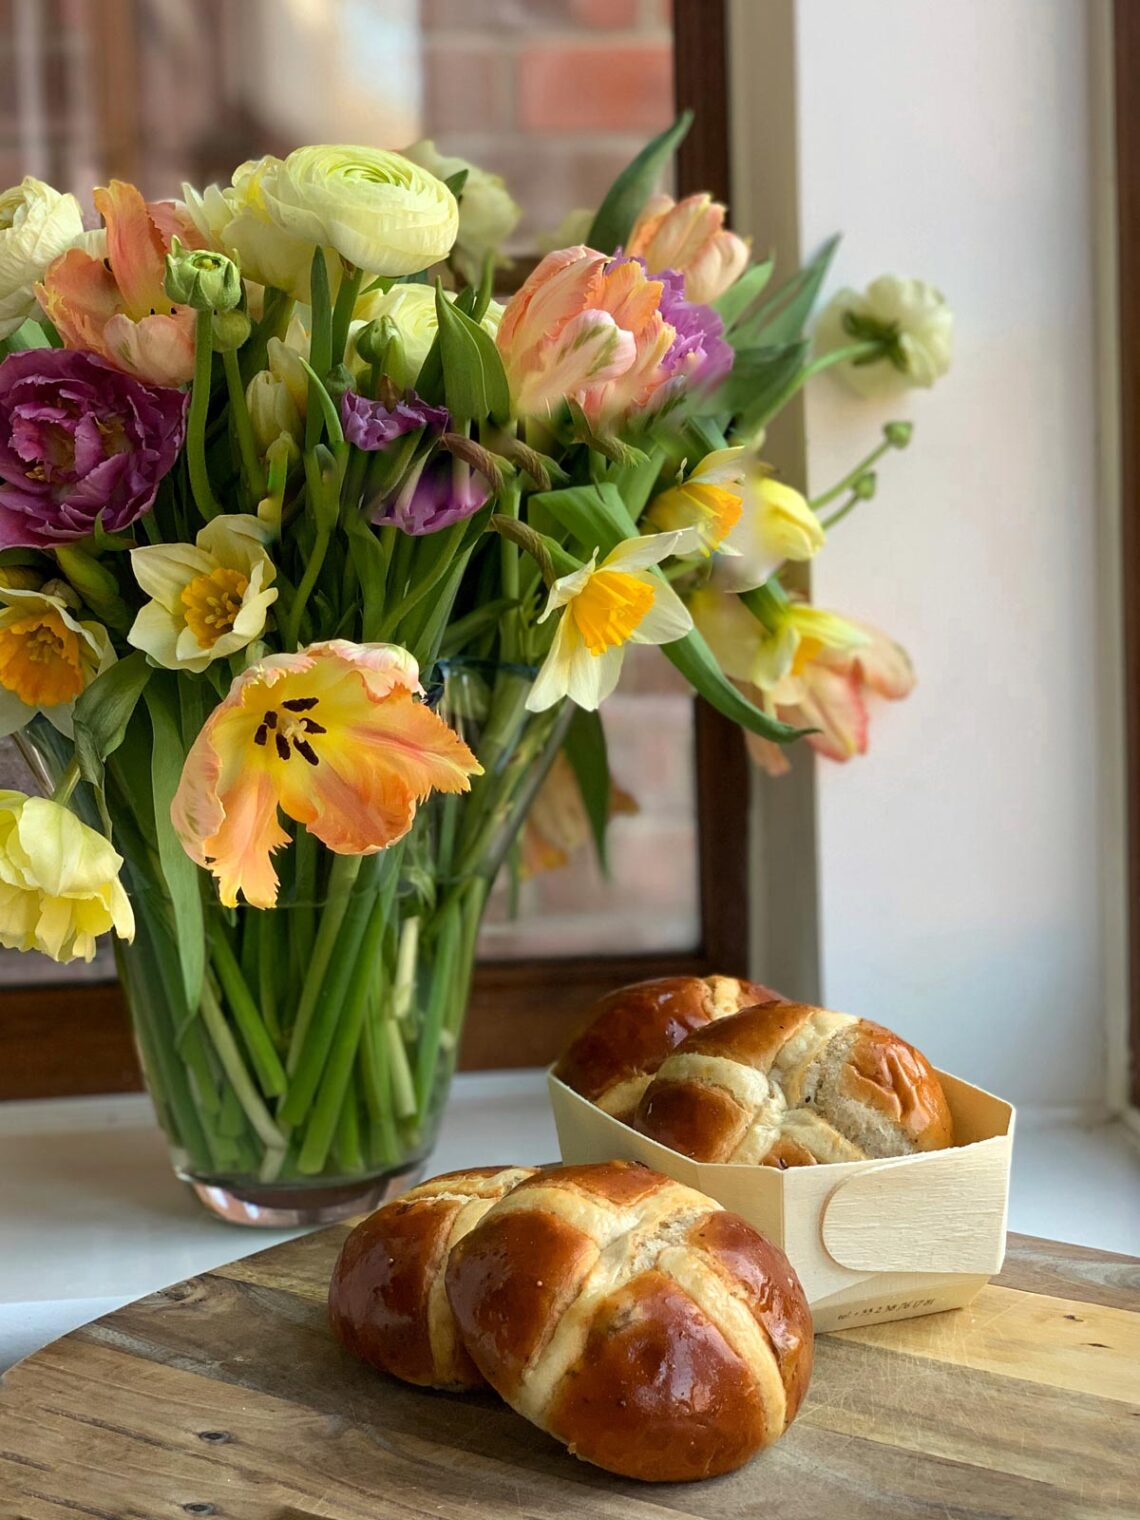 Hot cross buns by Mykola Nevrev on the best culinary blog for cooking at home.